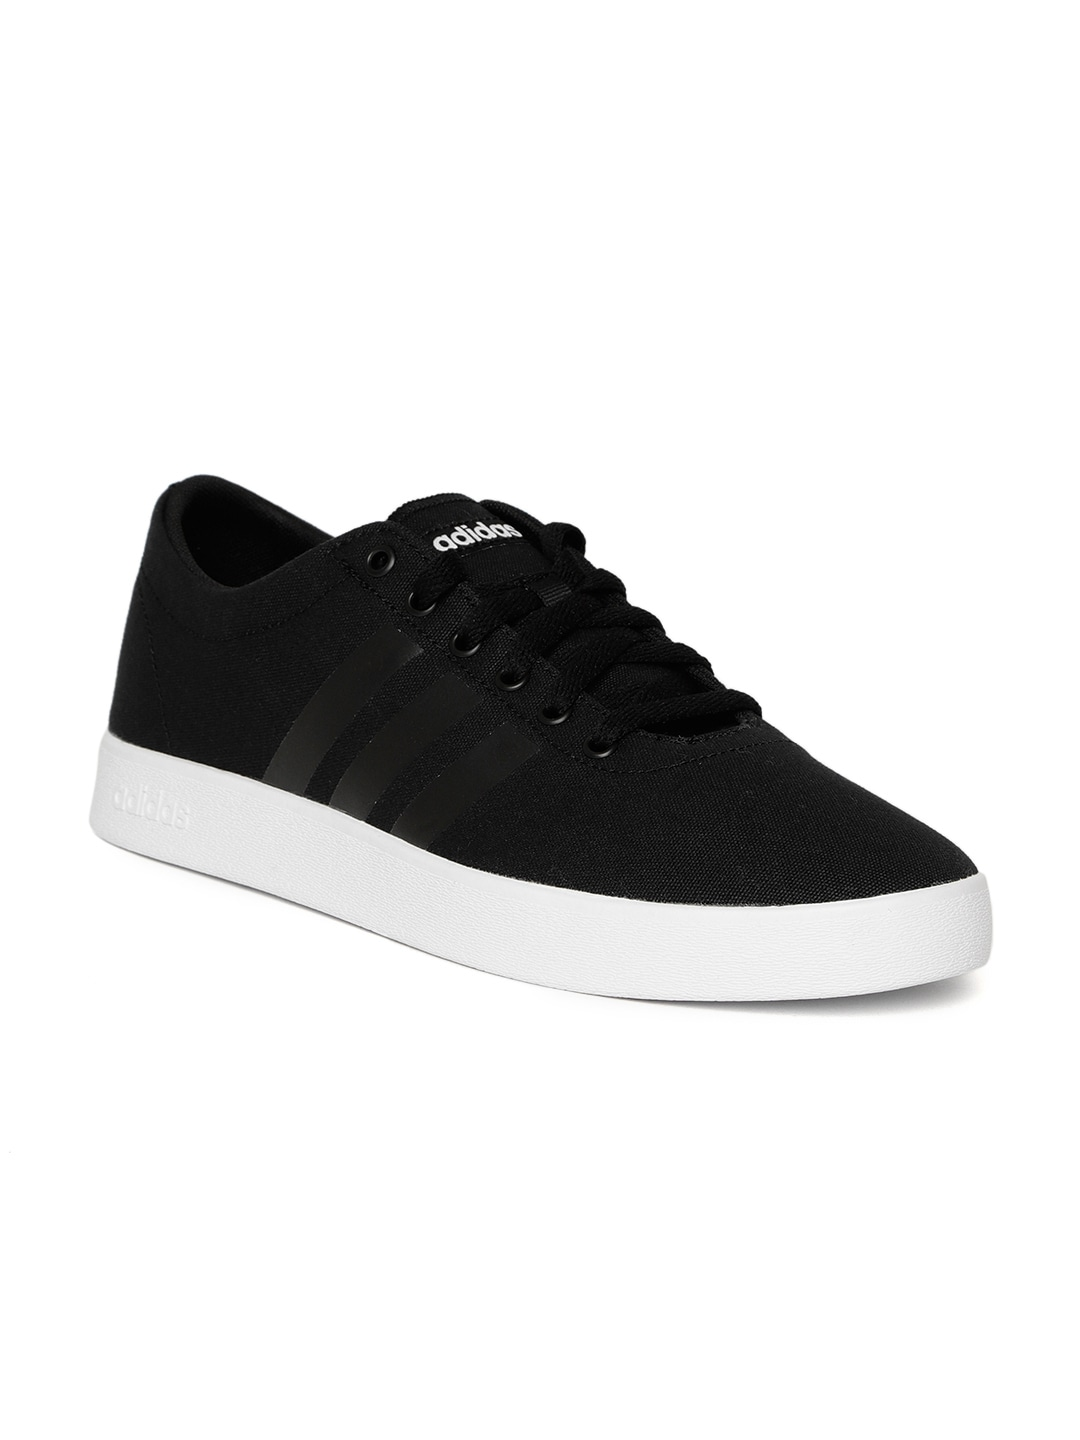 Online And Shoes Buy Originals Clothing Adidas wq7ZBA8